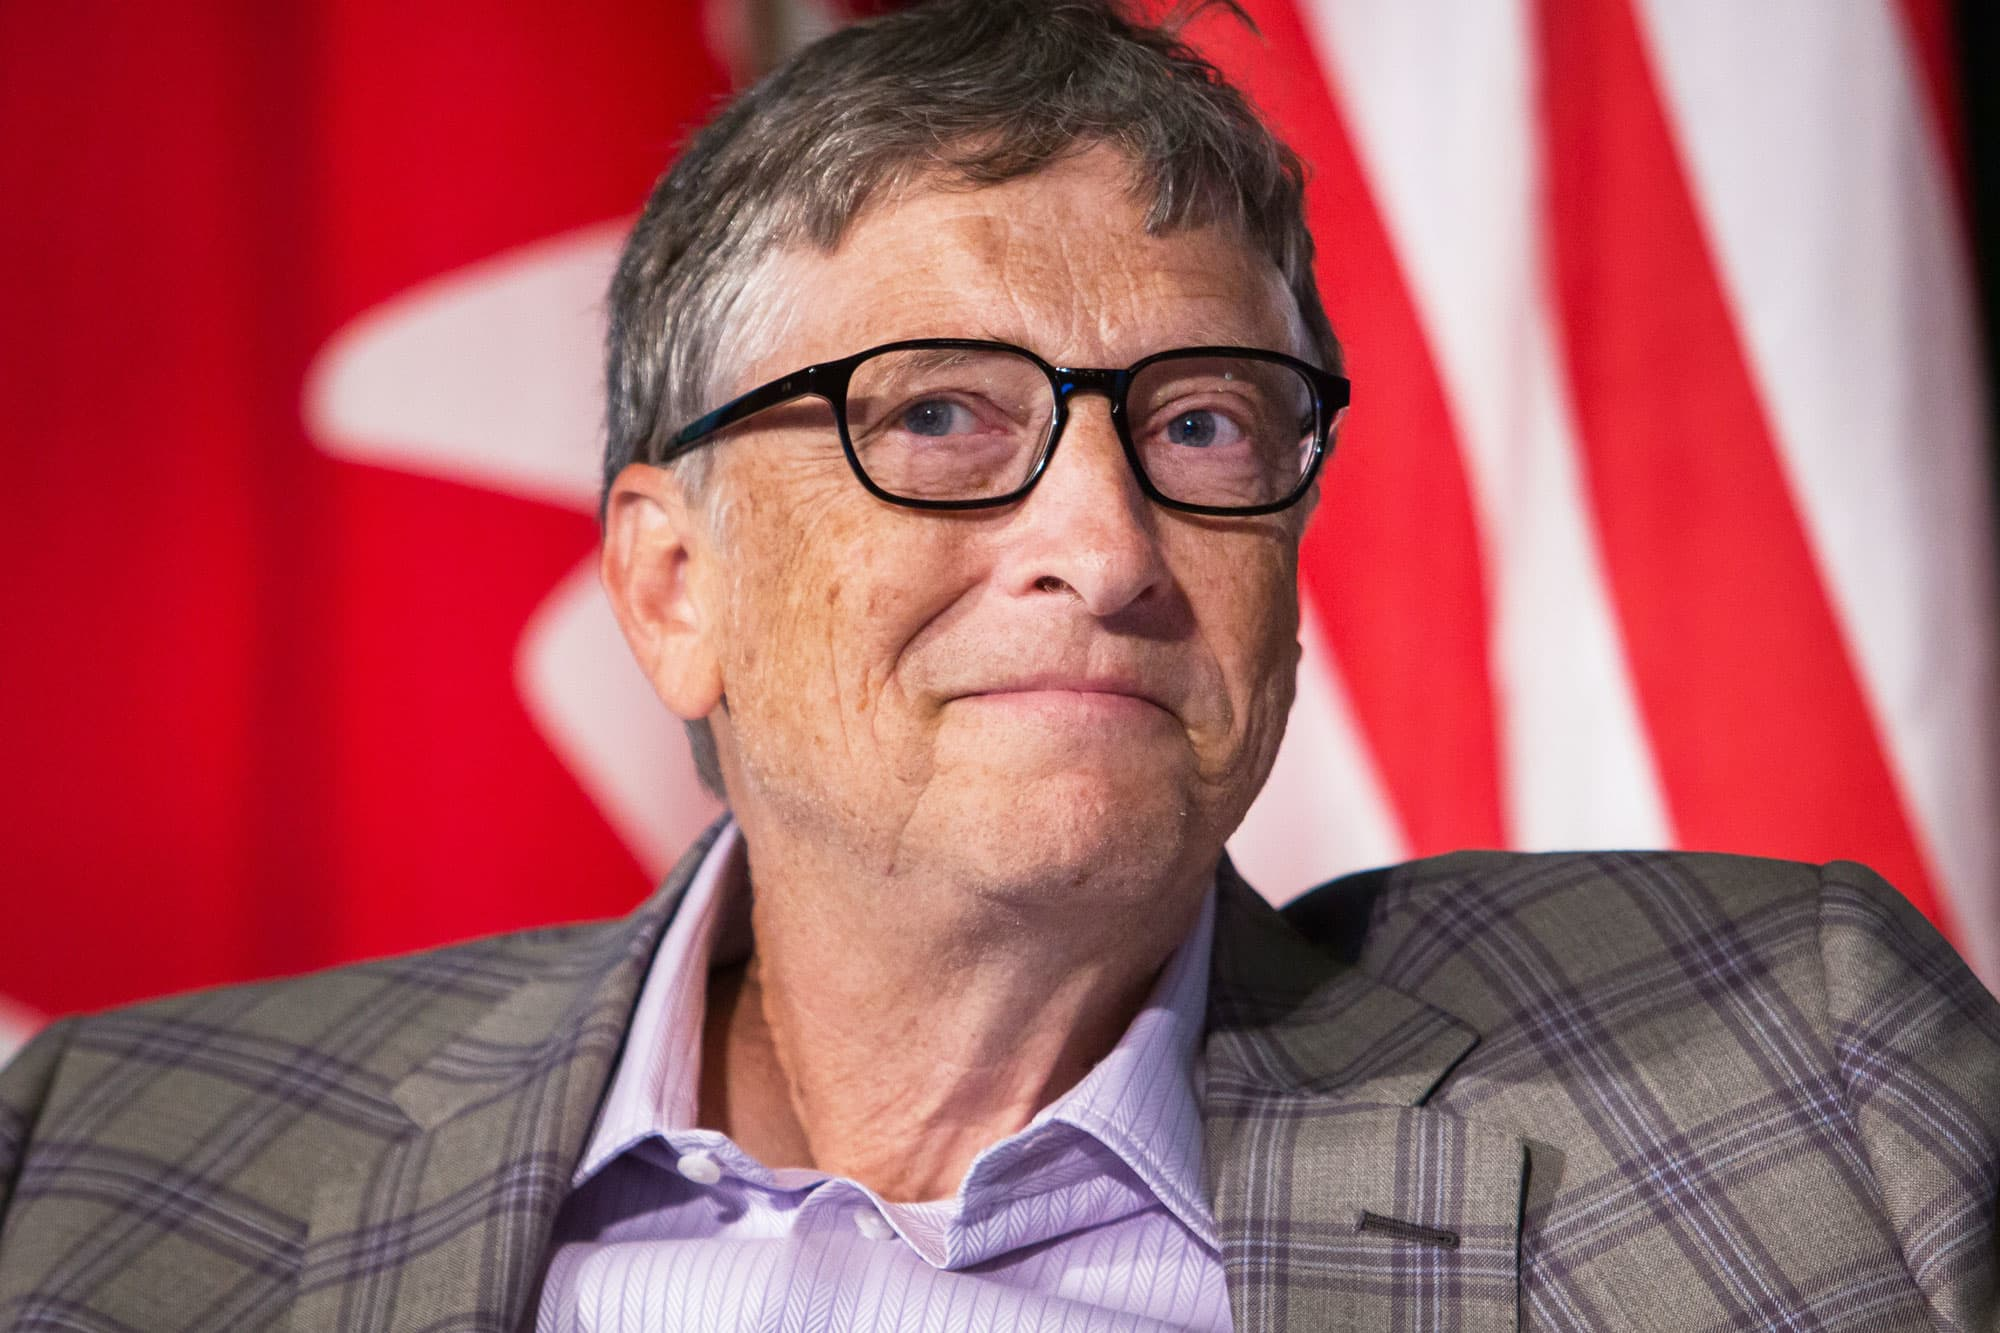 Bill Gates: This book was so good, 'I stayed up with it until 3 a.m.'—then gifted it to 50 friends